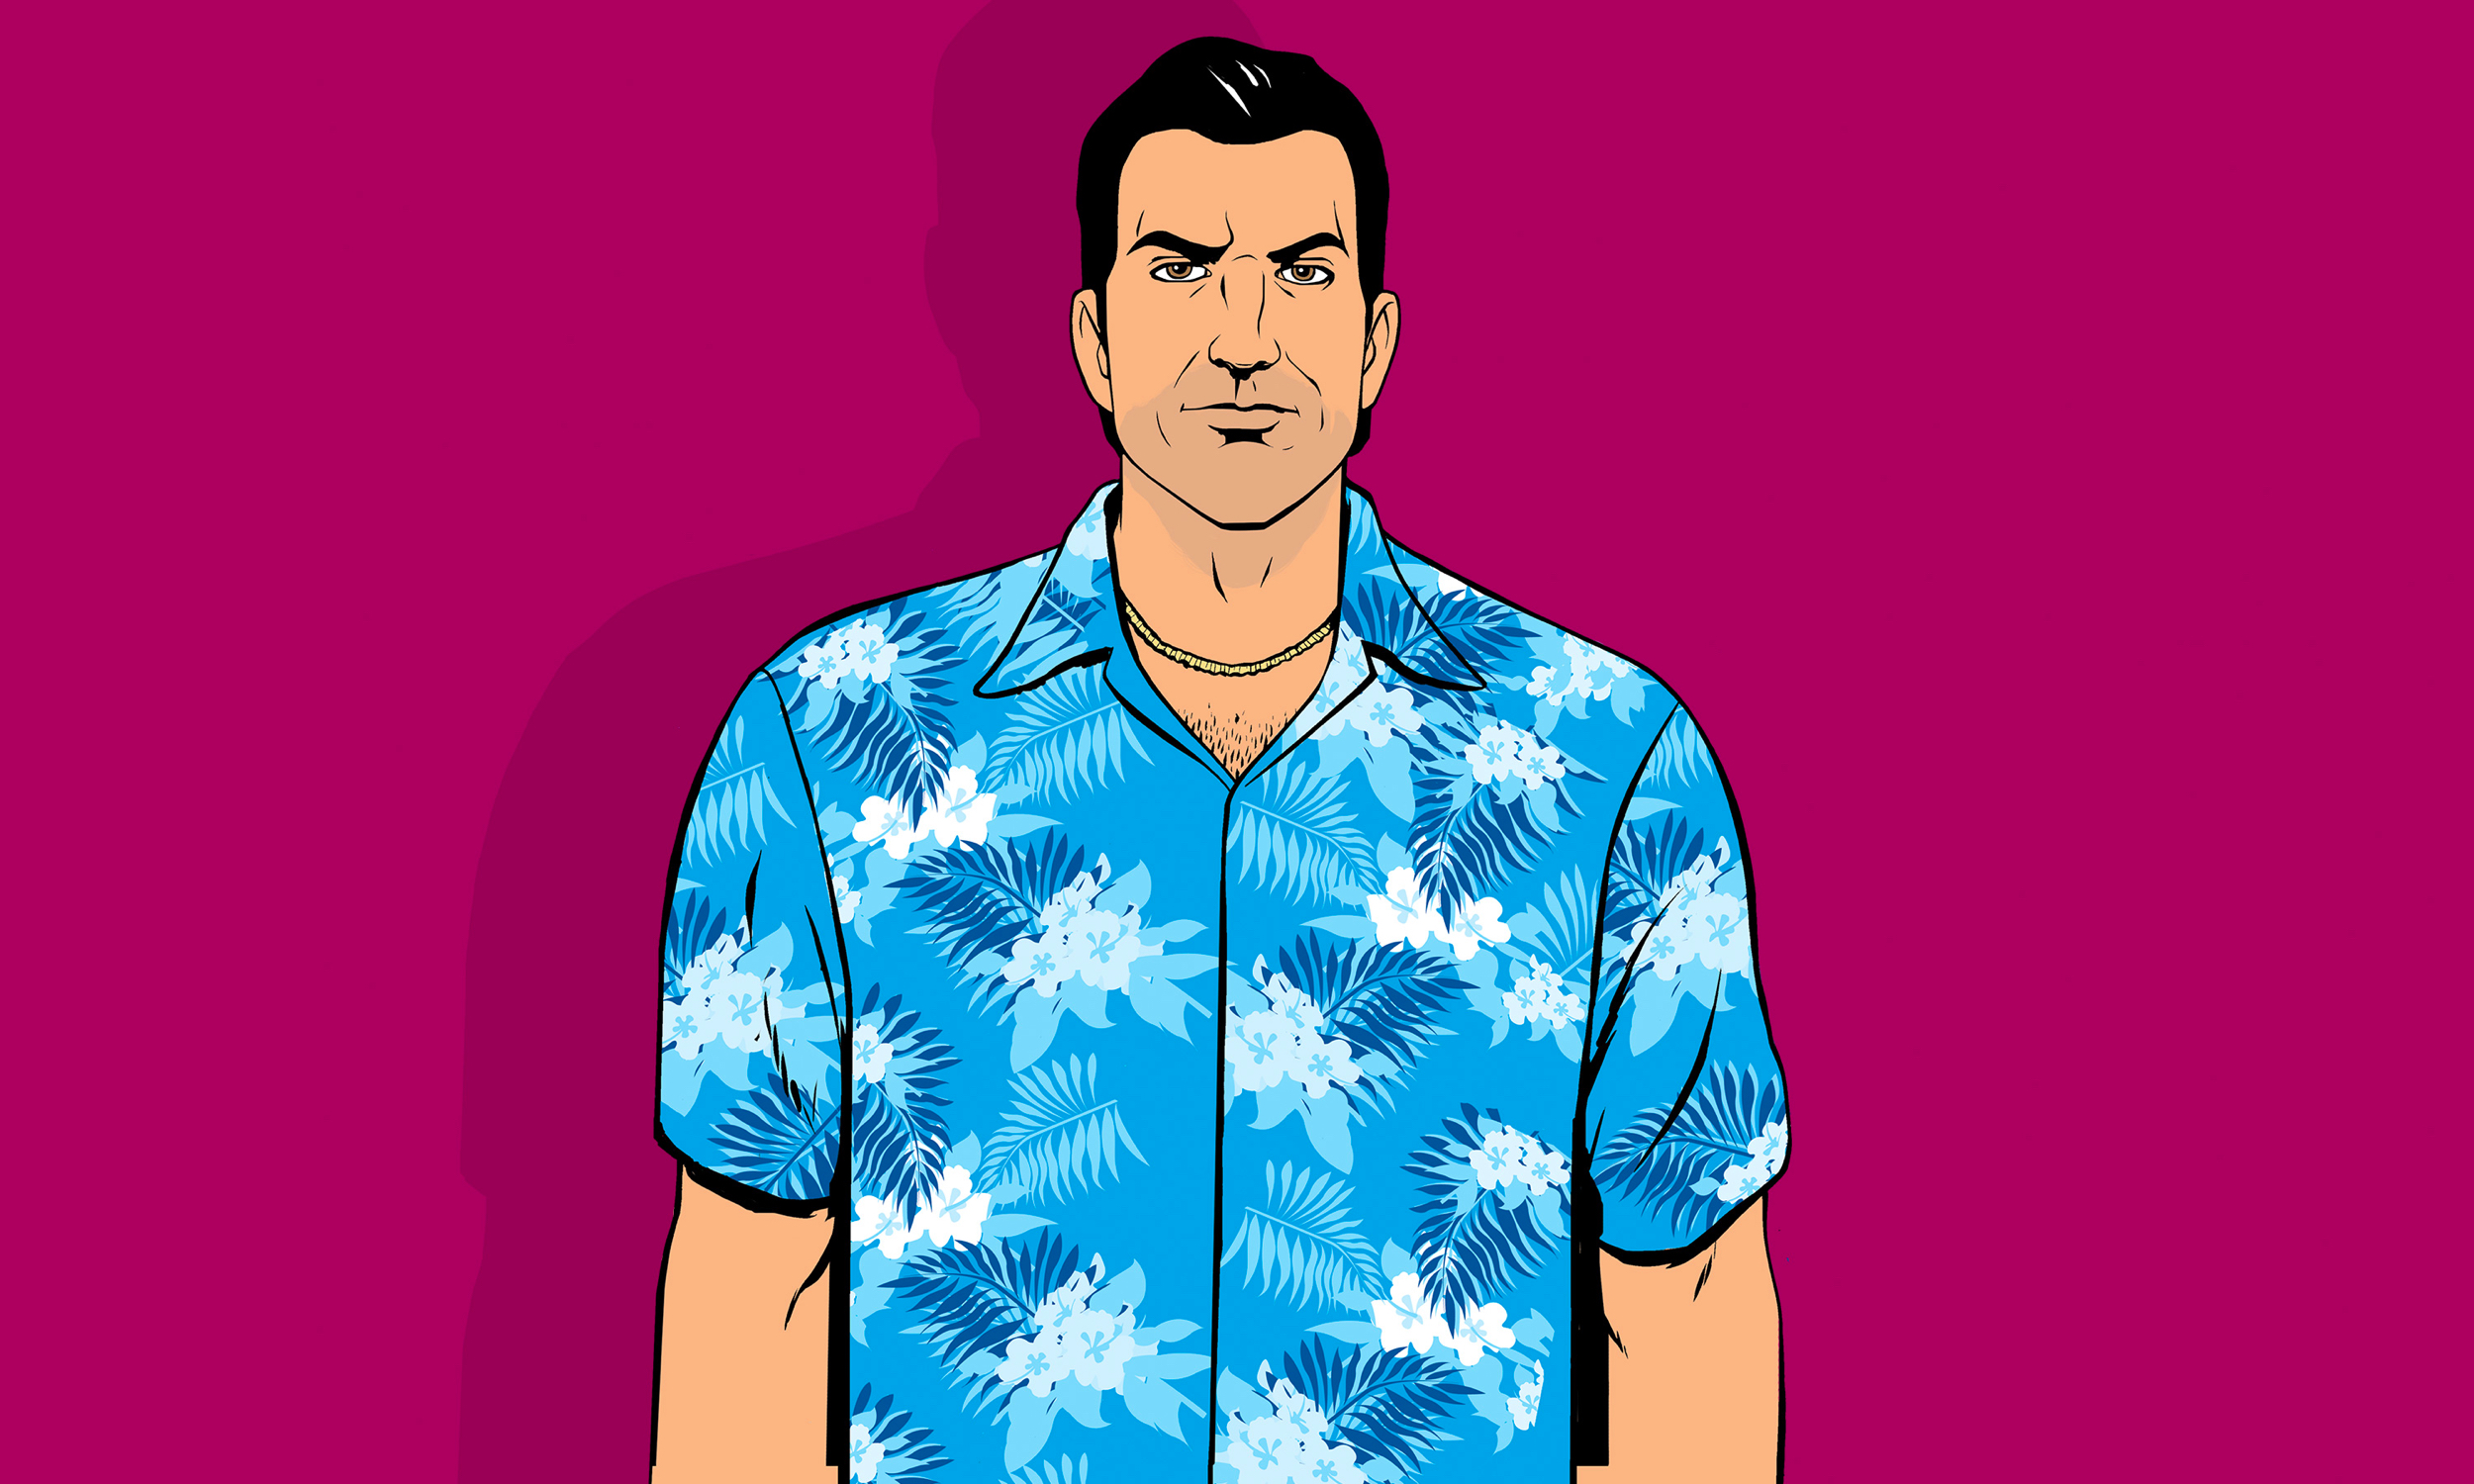 His potential map was leaked in Vice City